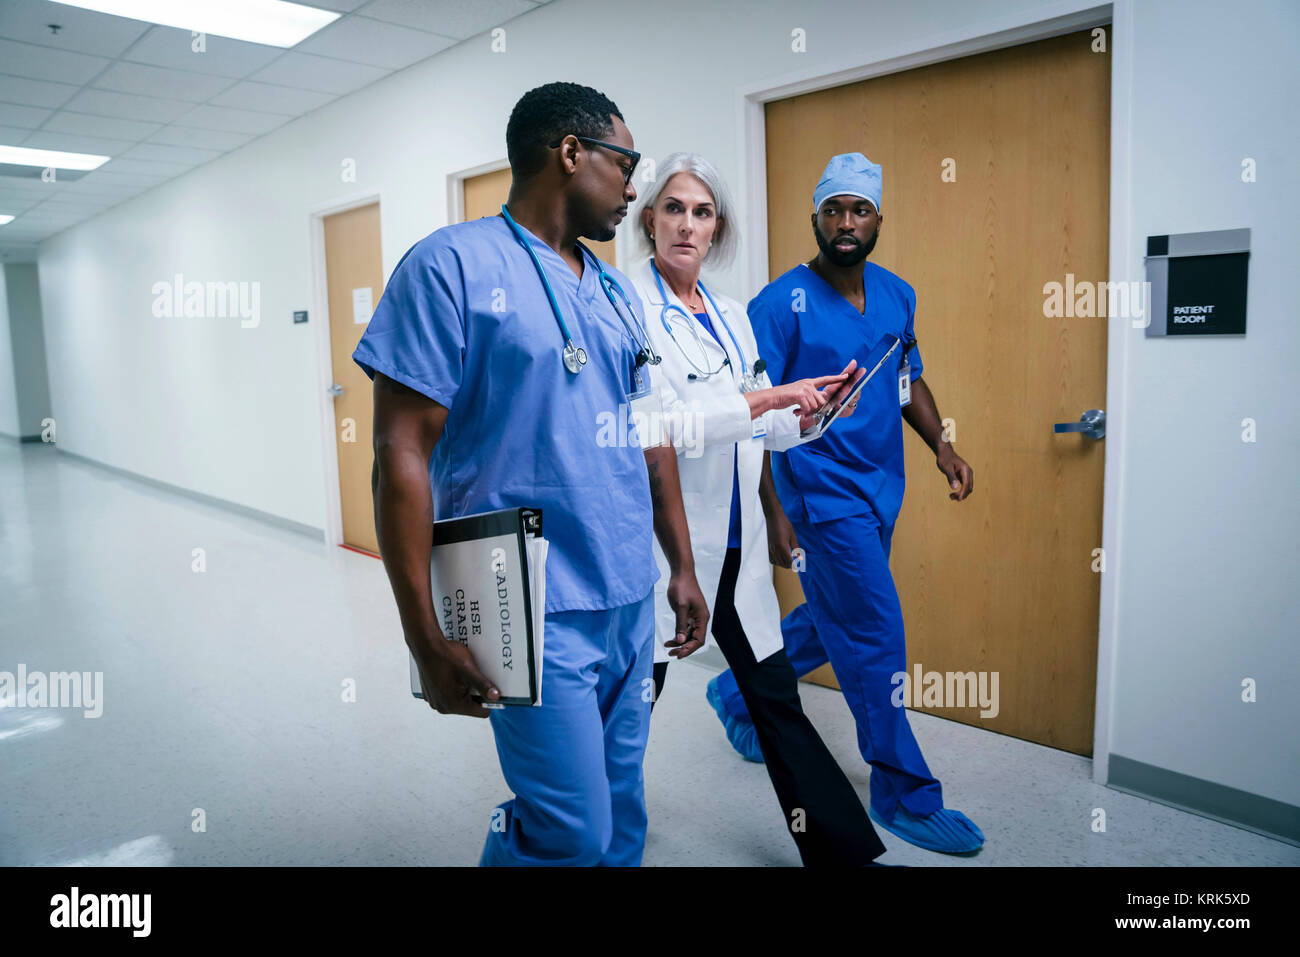 Doctor and nurses discussing digital tablet in hospital - Stock Image